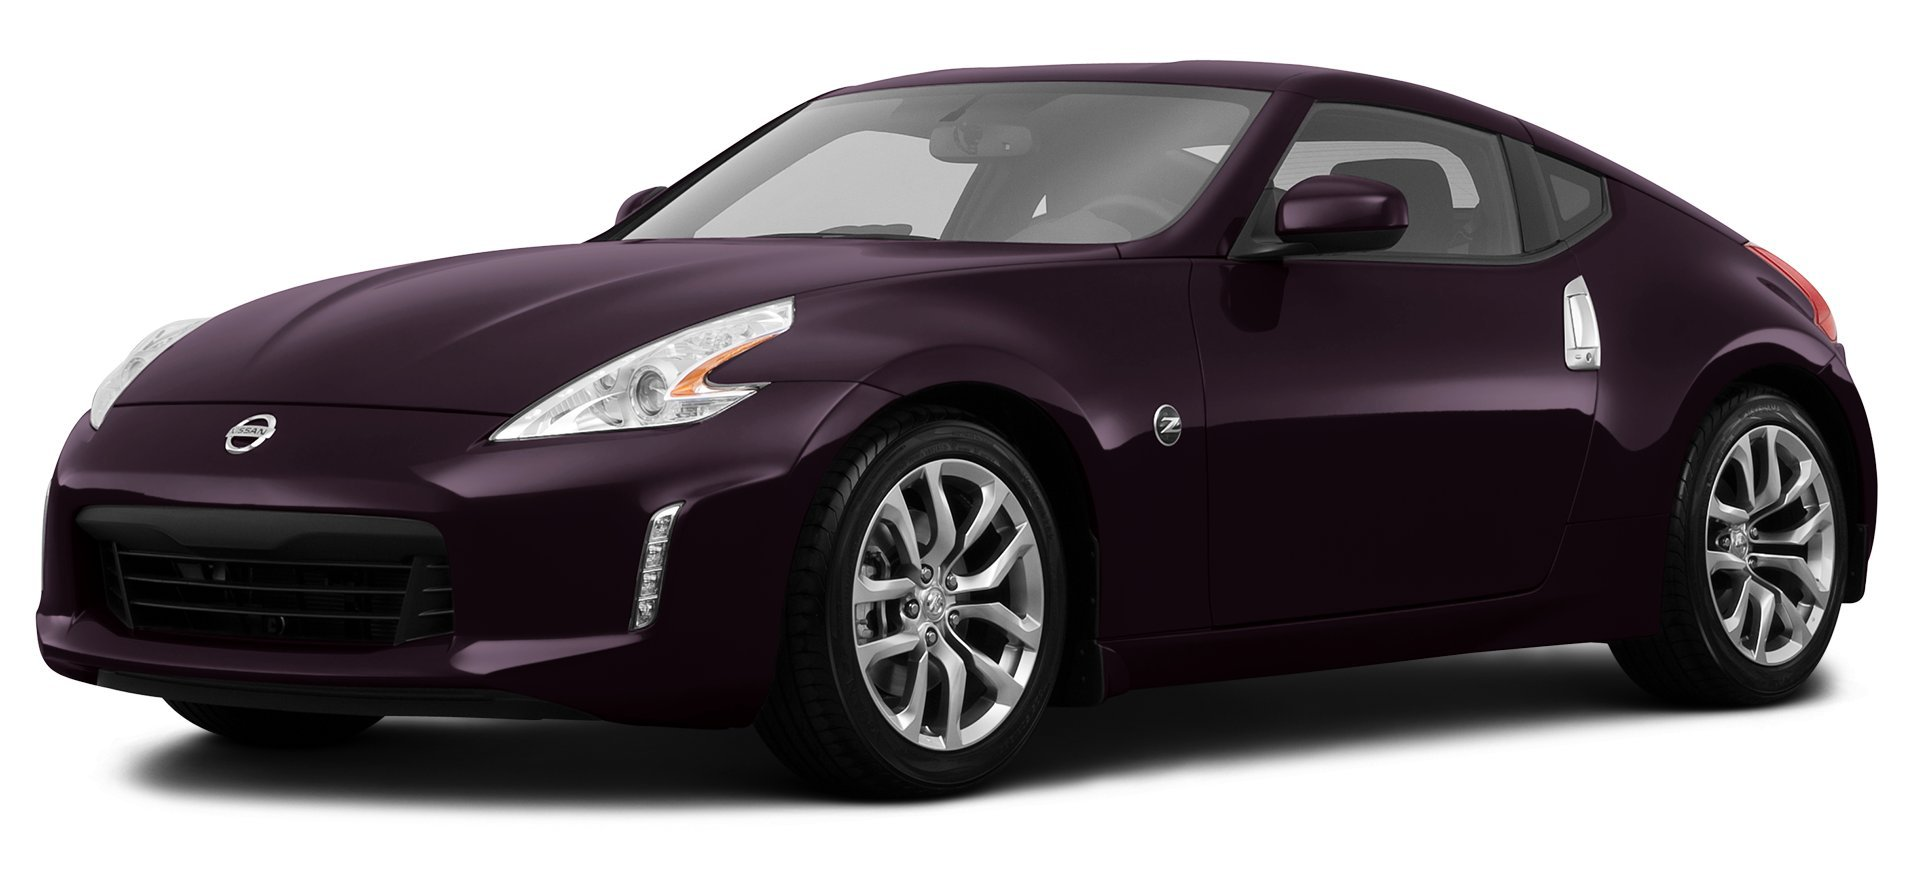 Amazon.com: 2013 Nissan 370Z Reviews, Images, and Specs: Vehicles